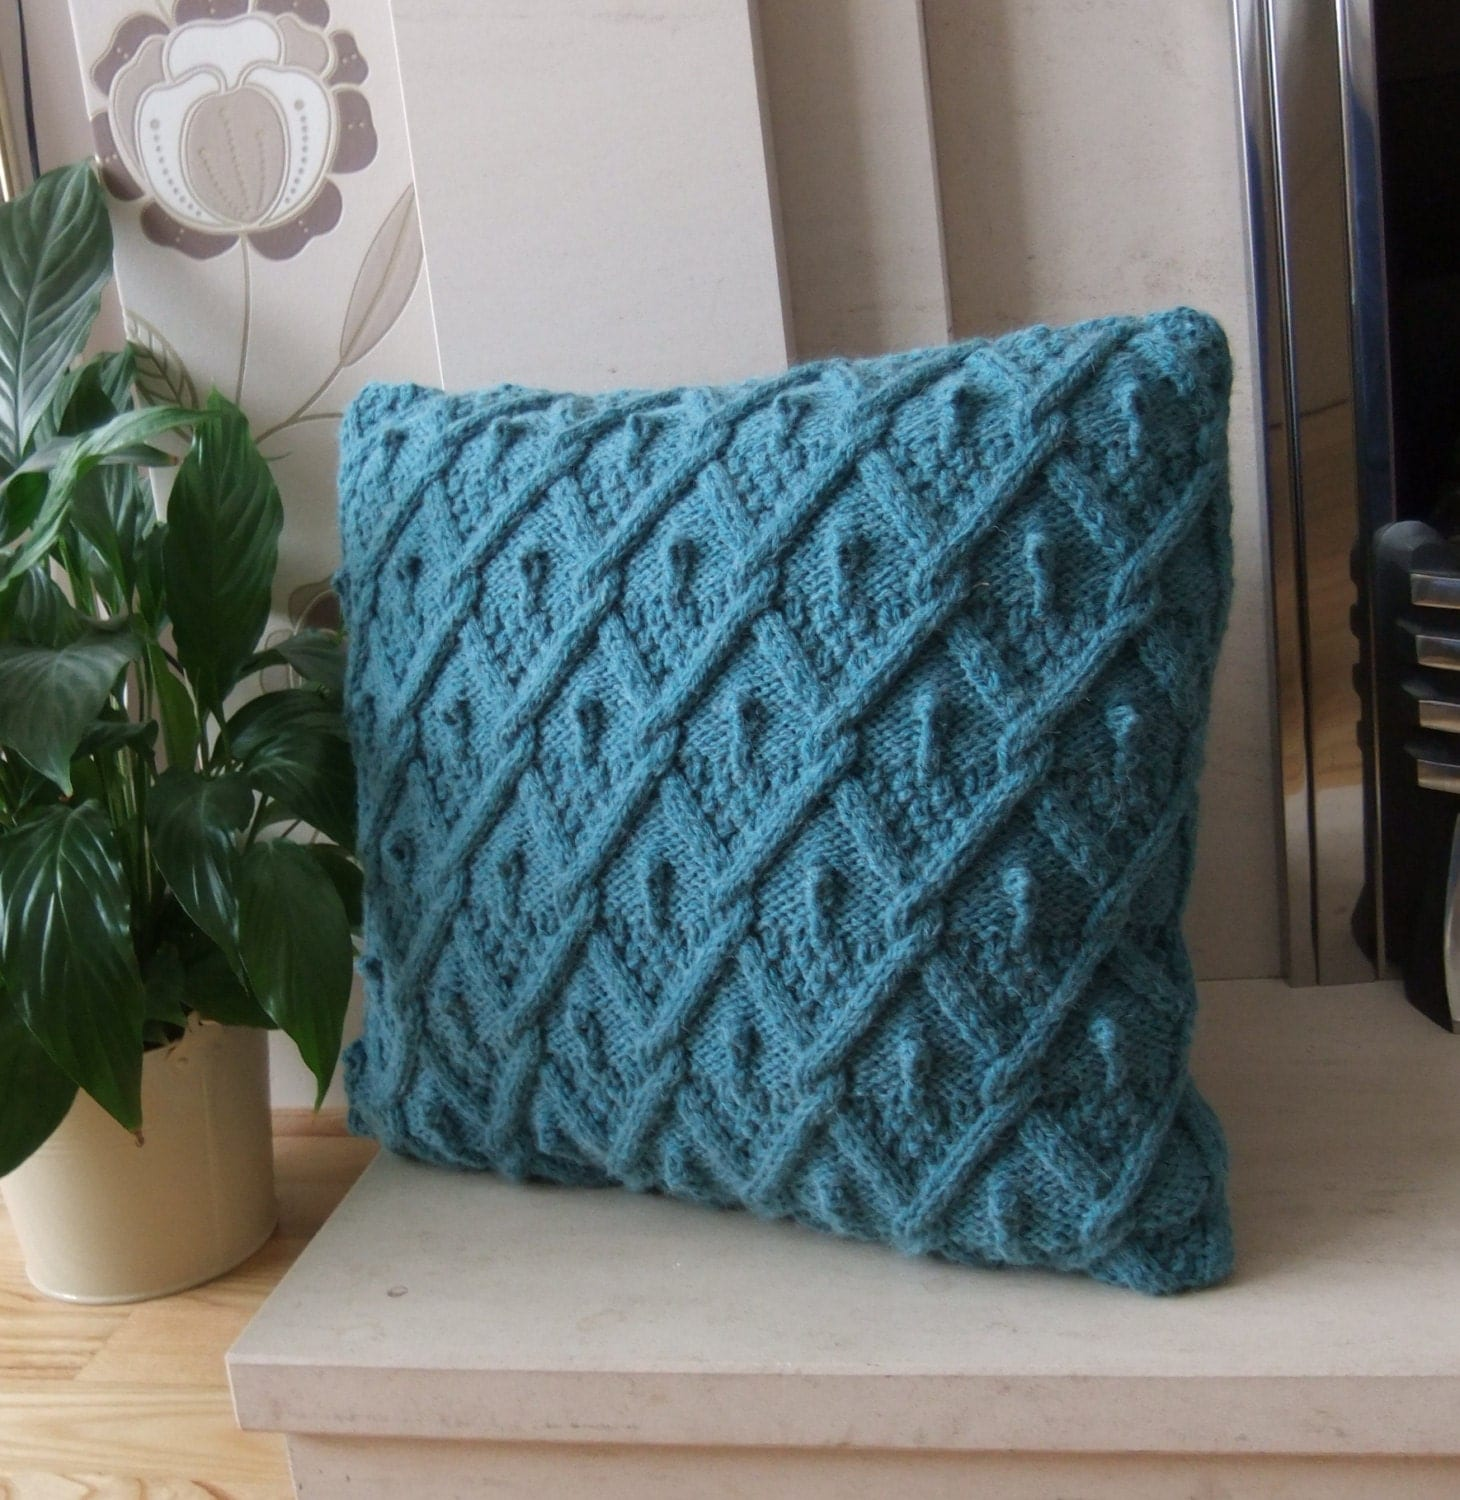 Knitted Cushion Cover Pattern Cable : Hand knitted Teal Diamond Cable Cushion / Pillow Cover